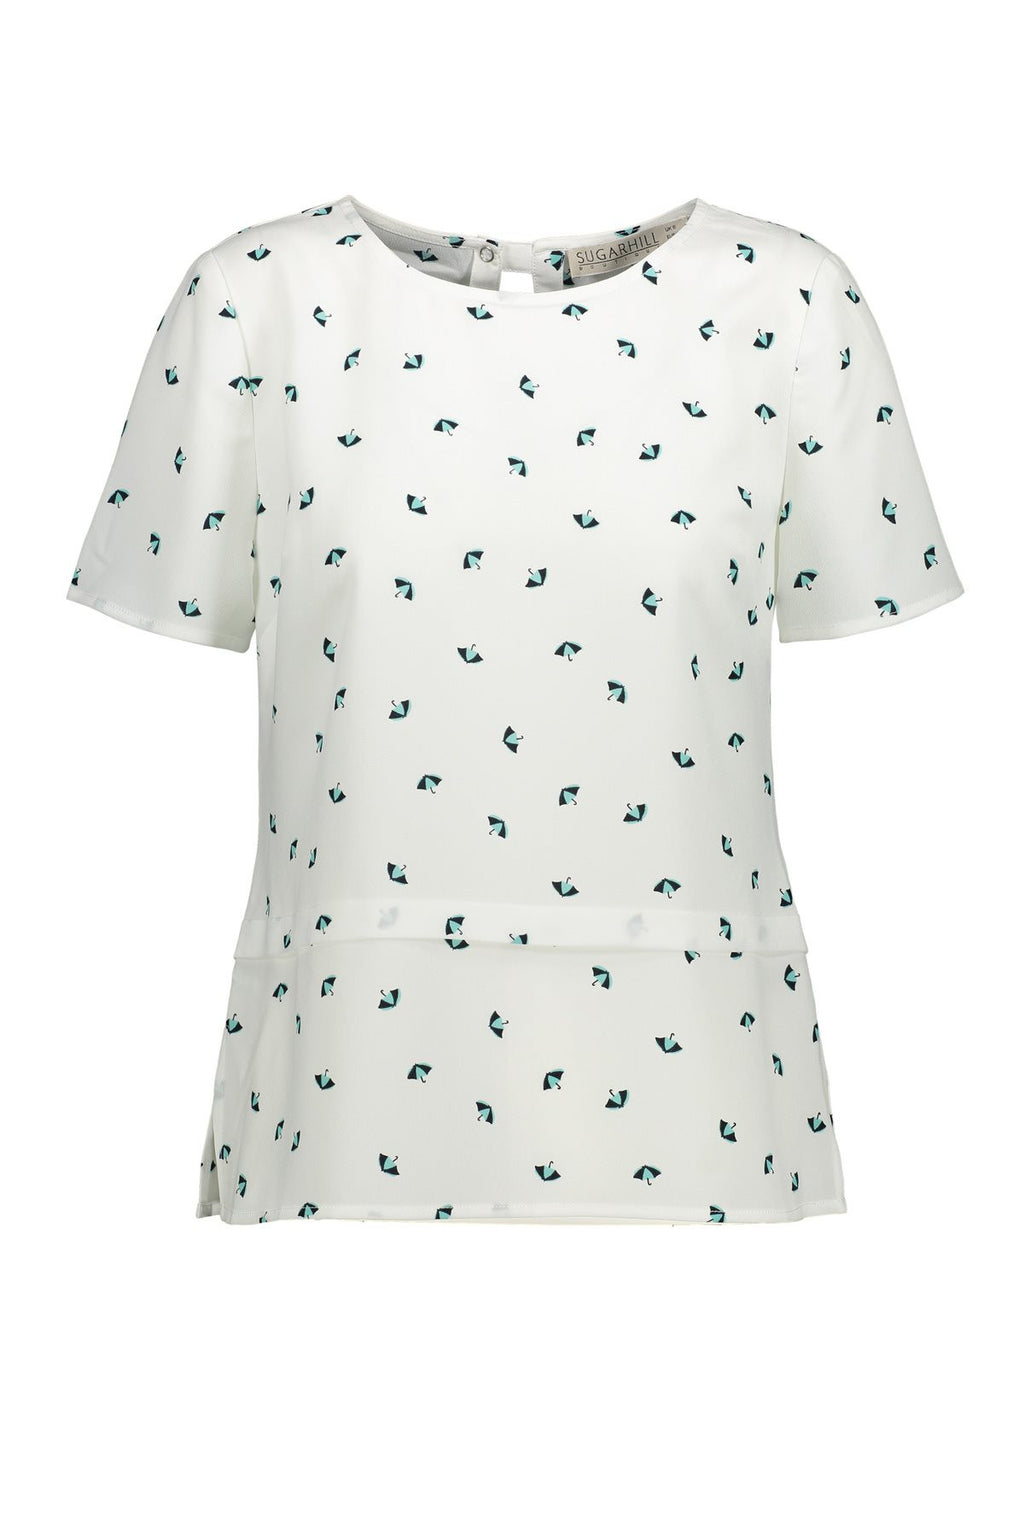 Trixie Umbrella Tee Top by Sugarhill Boutique